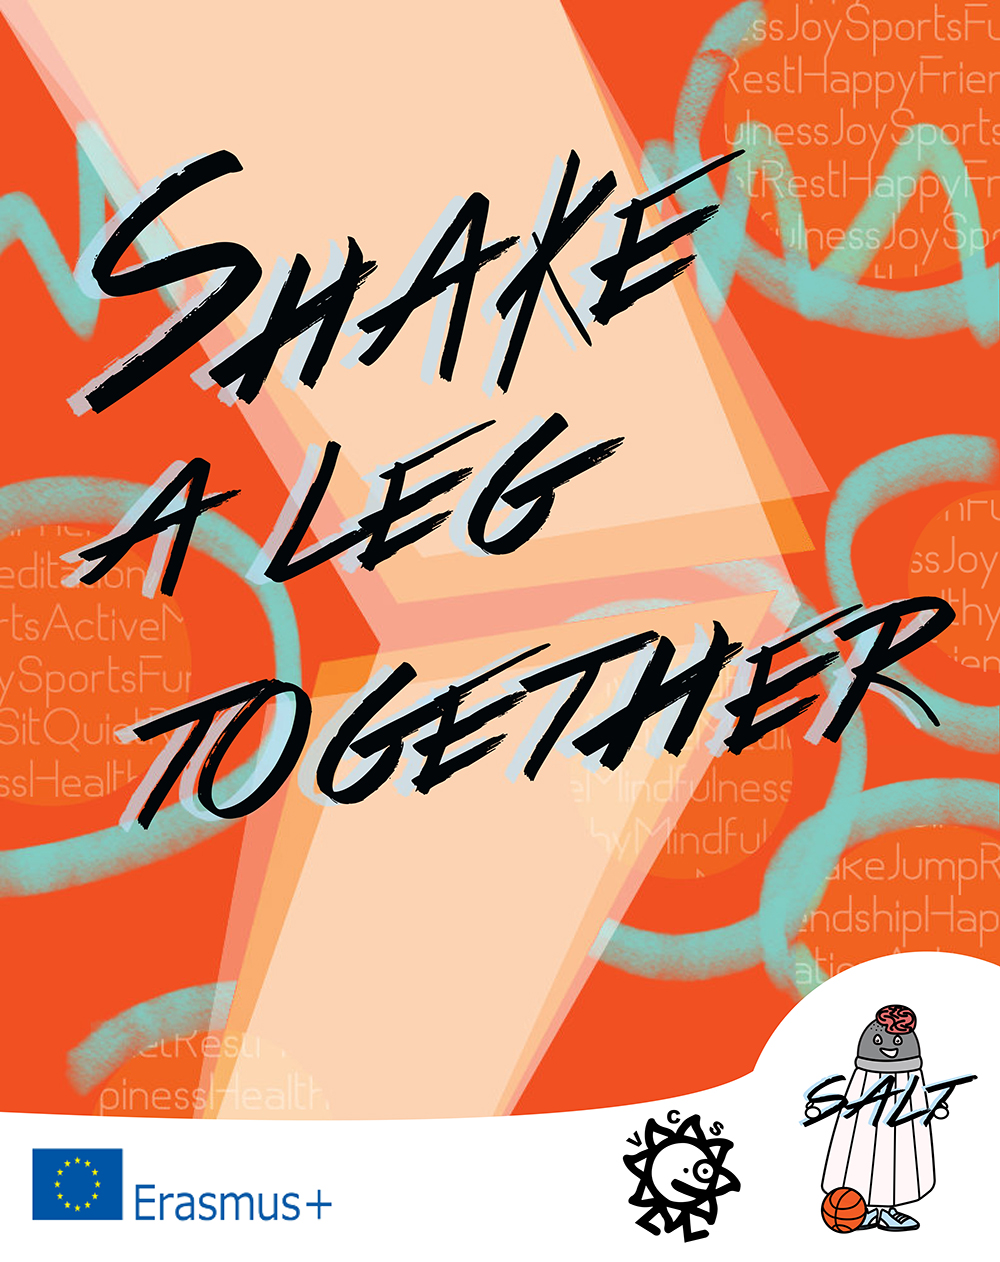 Shake a leg, together